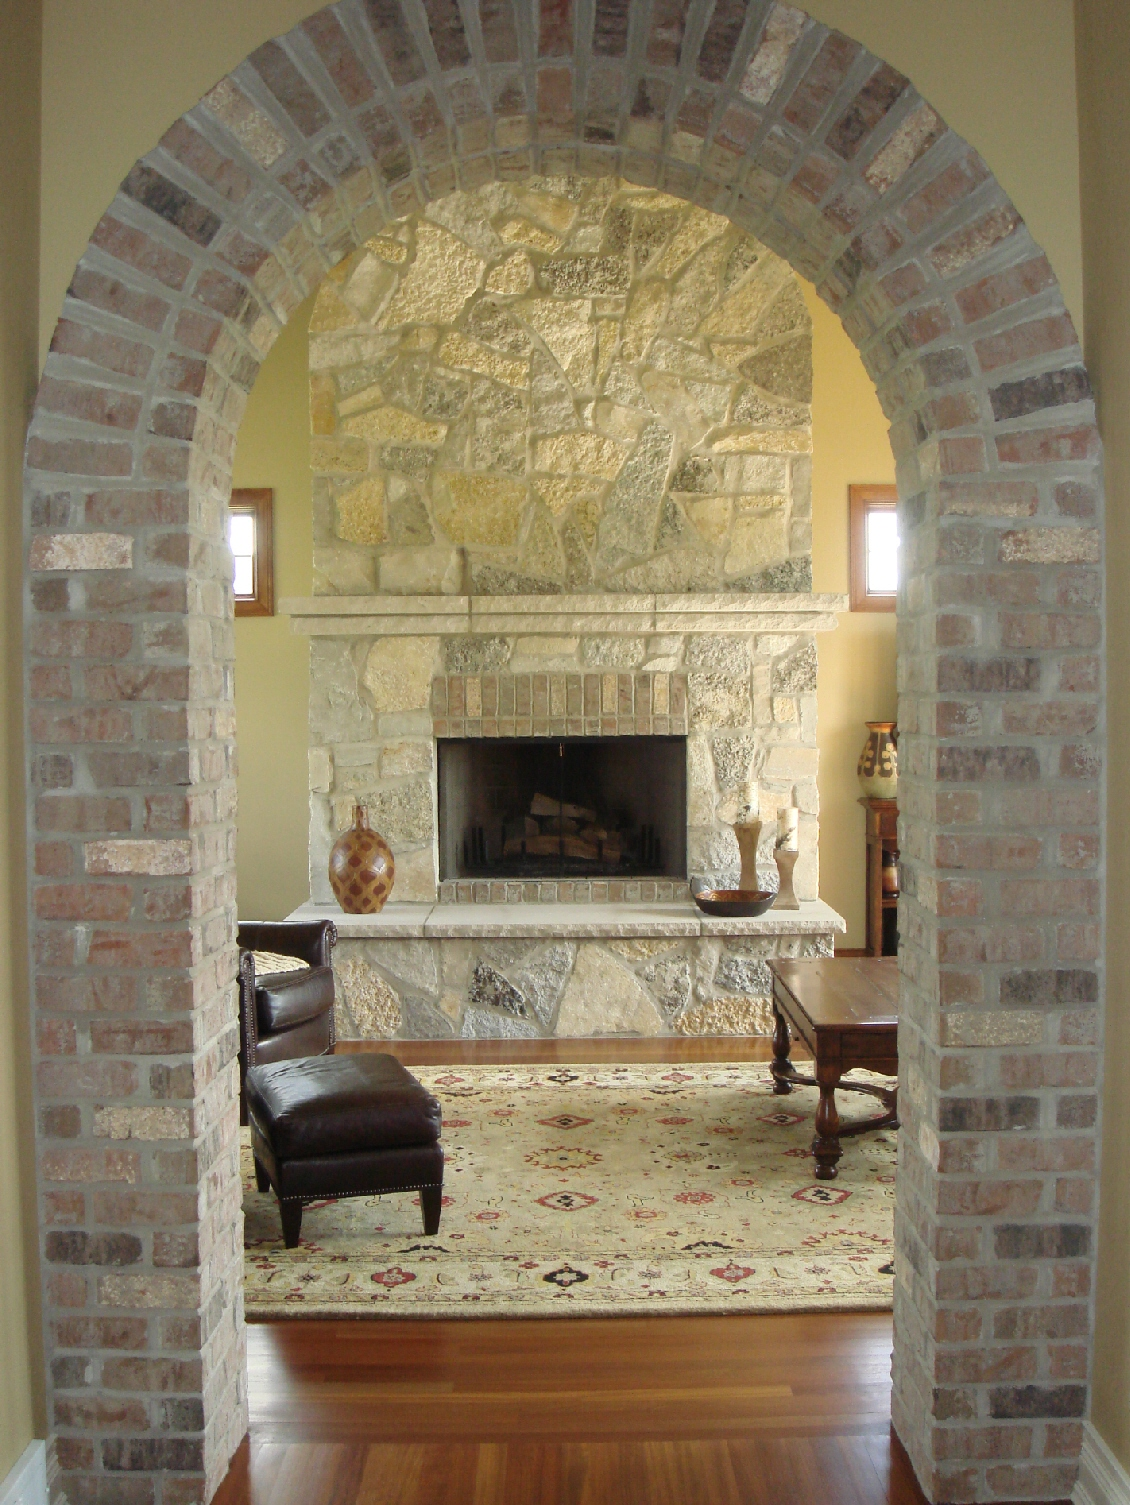 1000 images about brick wall archway on pinterest for Internal arch